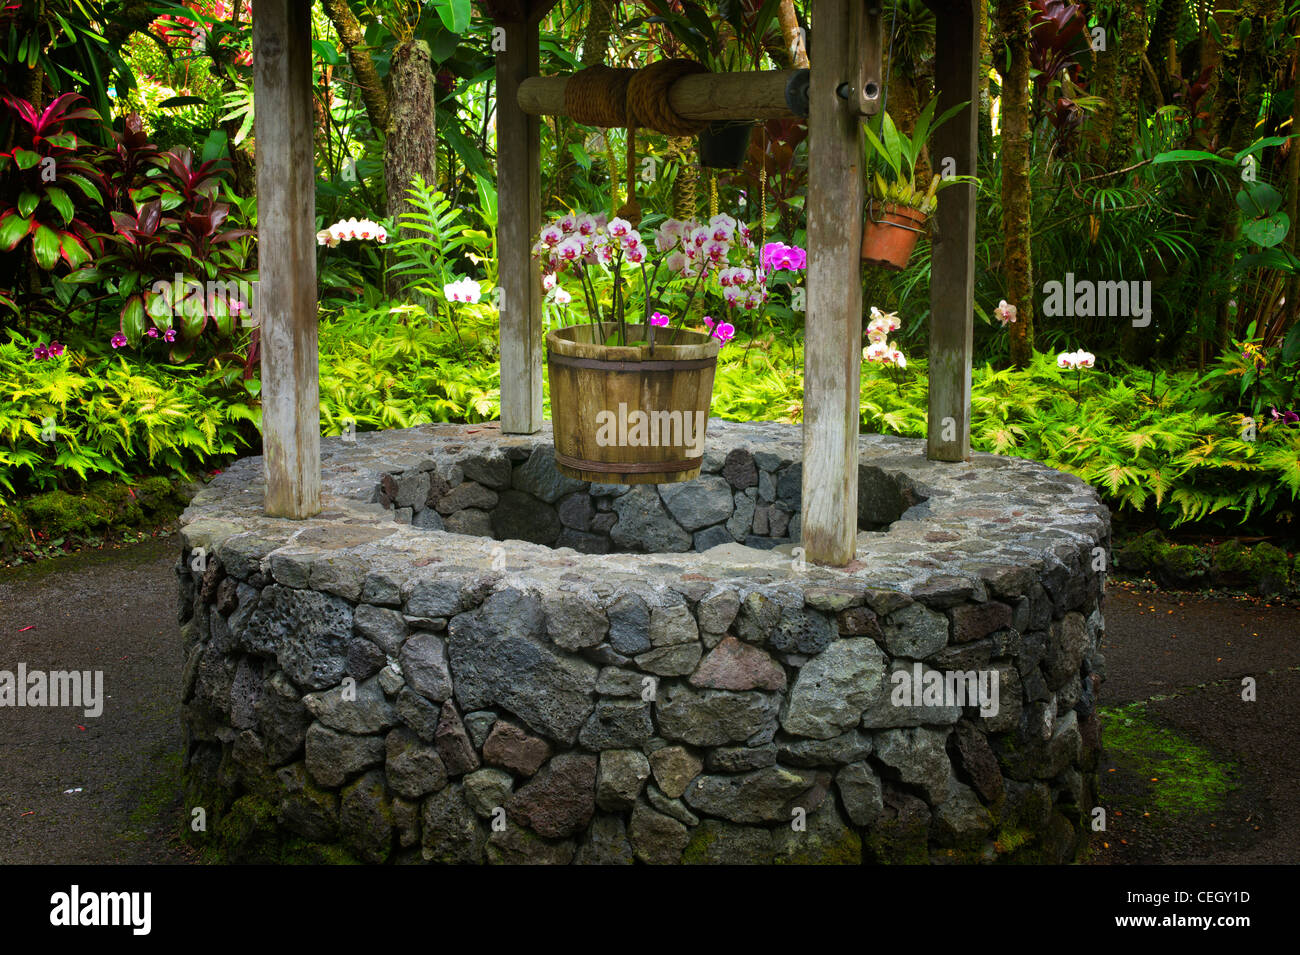 Garden designs with bridges and wishing wells landscaping ideas - Wishing Well Hawaii Tropical Botanical Gardens Hawaii The Big Island Stock